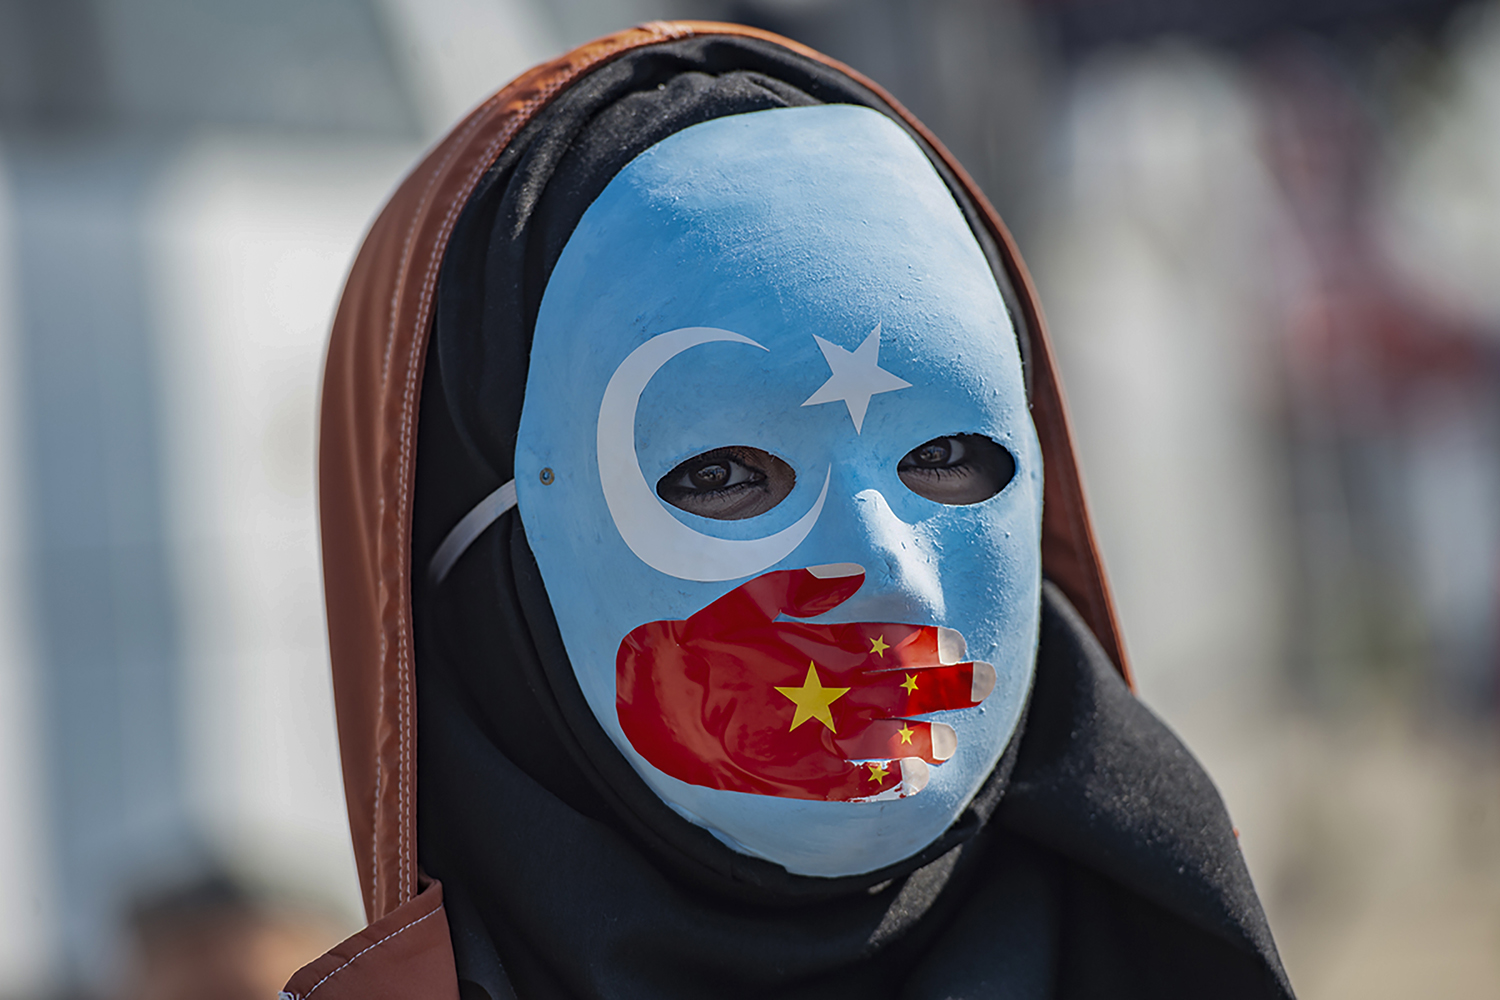 TURKEY | A demonstrator wears a mask painted with the colors of the flag of East Turkestan and a hand bearing the colours of the Chinese flag as she joins supporters of China's Muslim Uighur minority and Turkish nationalists during a protest in front of the Chinese consulate in Istanbul on Oct. 1. YASIN AKGUL/AFP via Getty Images